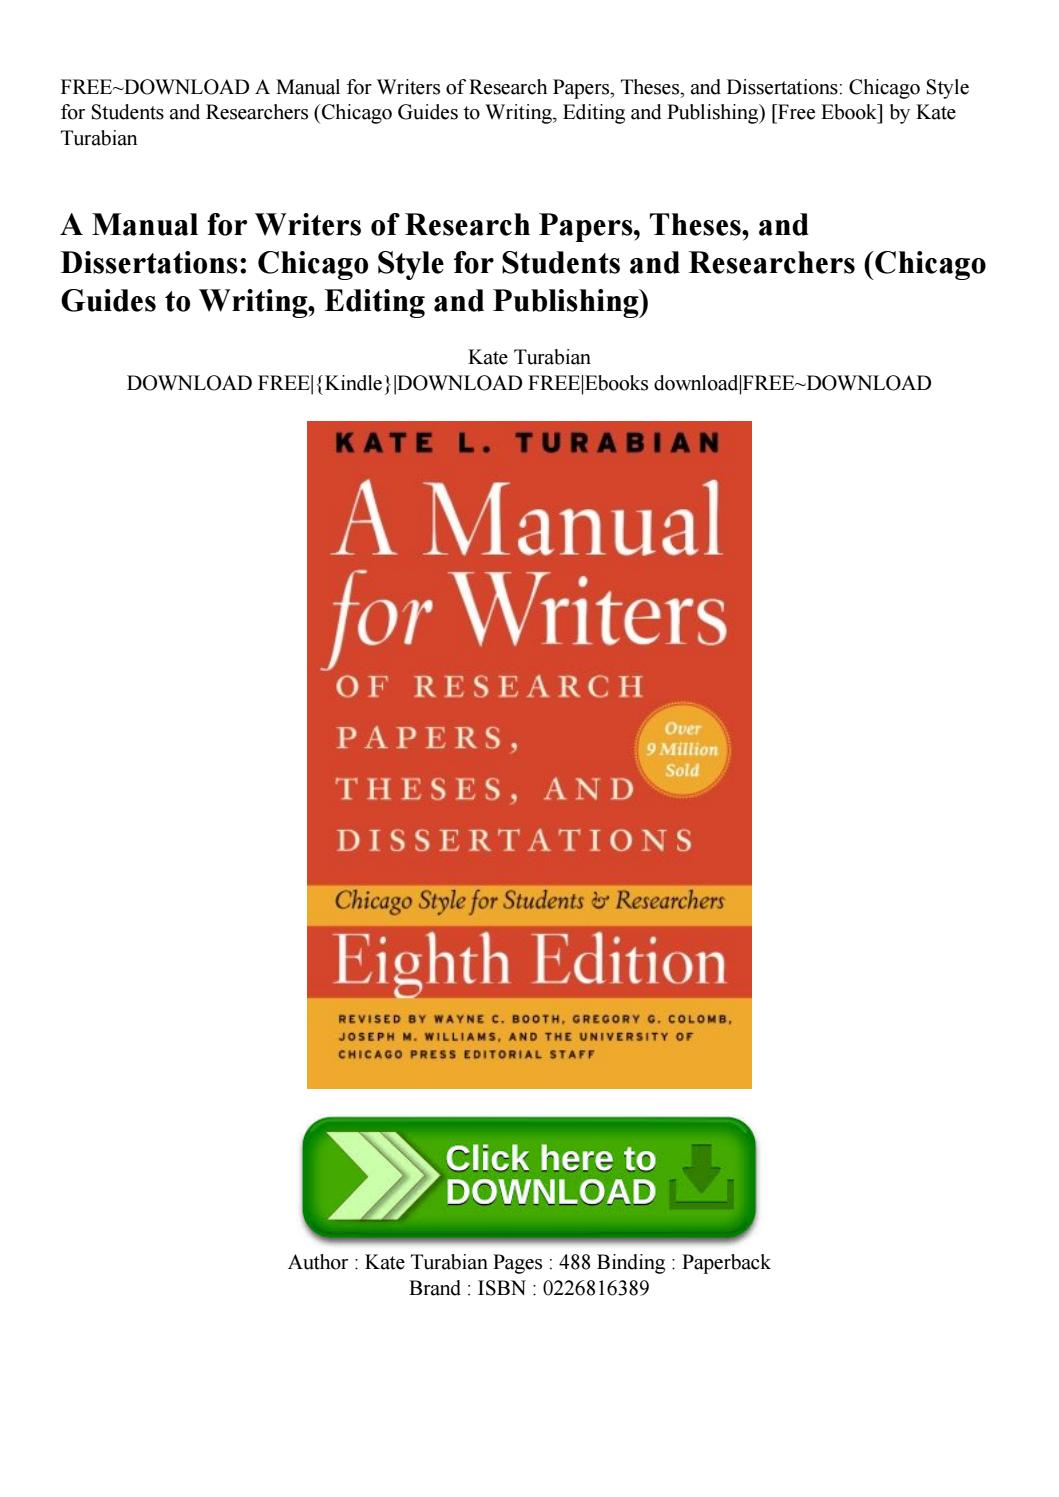 011 Page 1 Manual For Writers Of Researchs Theses And Dissertations Eighth Edition Phenomenal A Research Papers Pdf Full